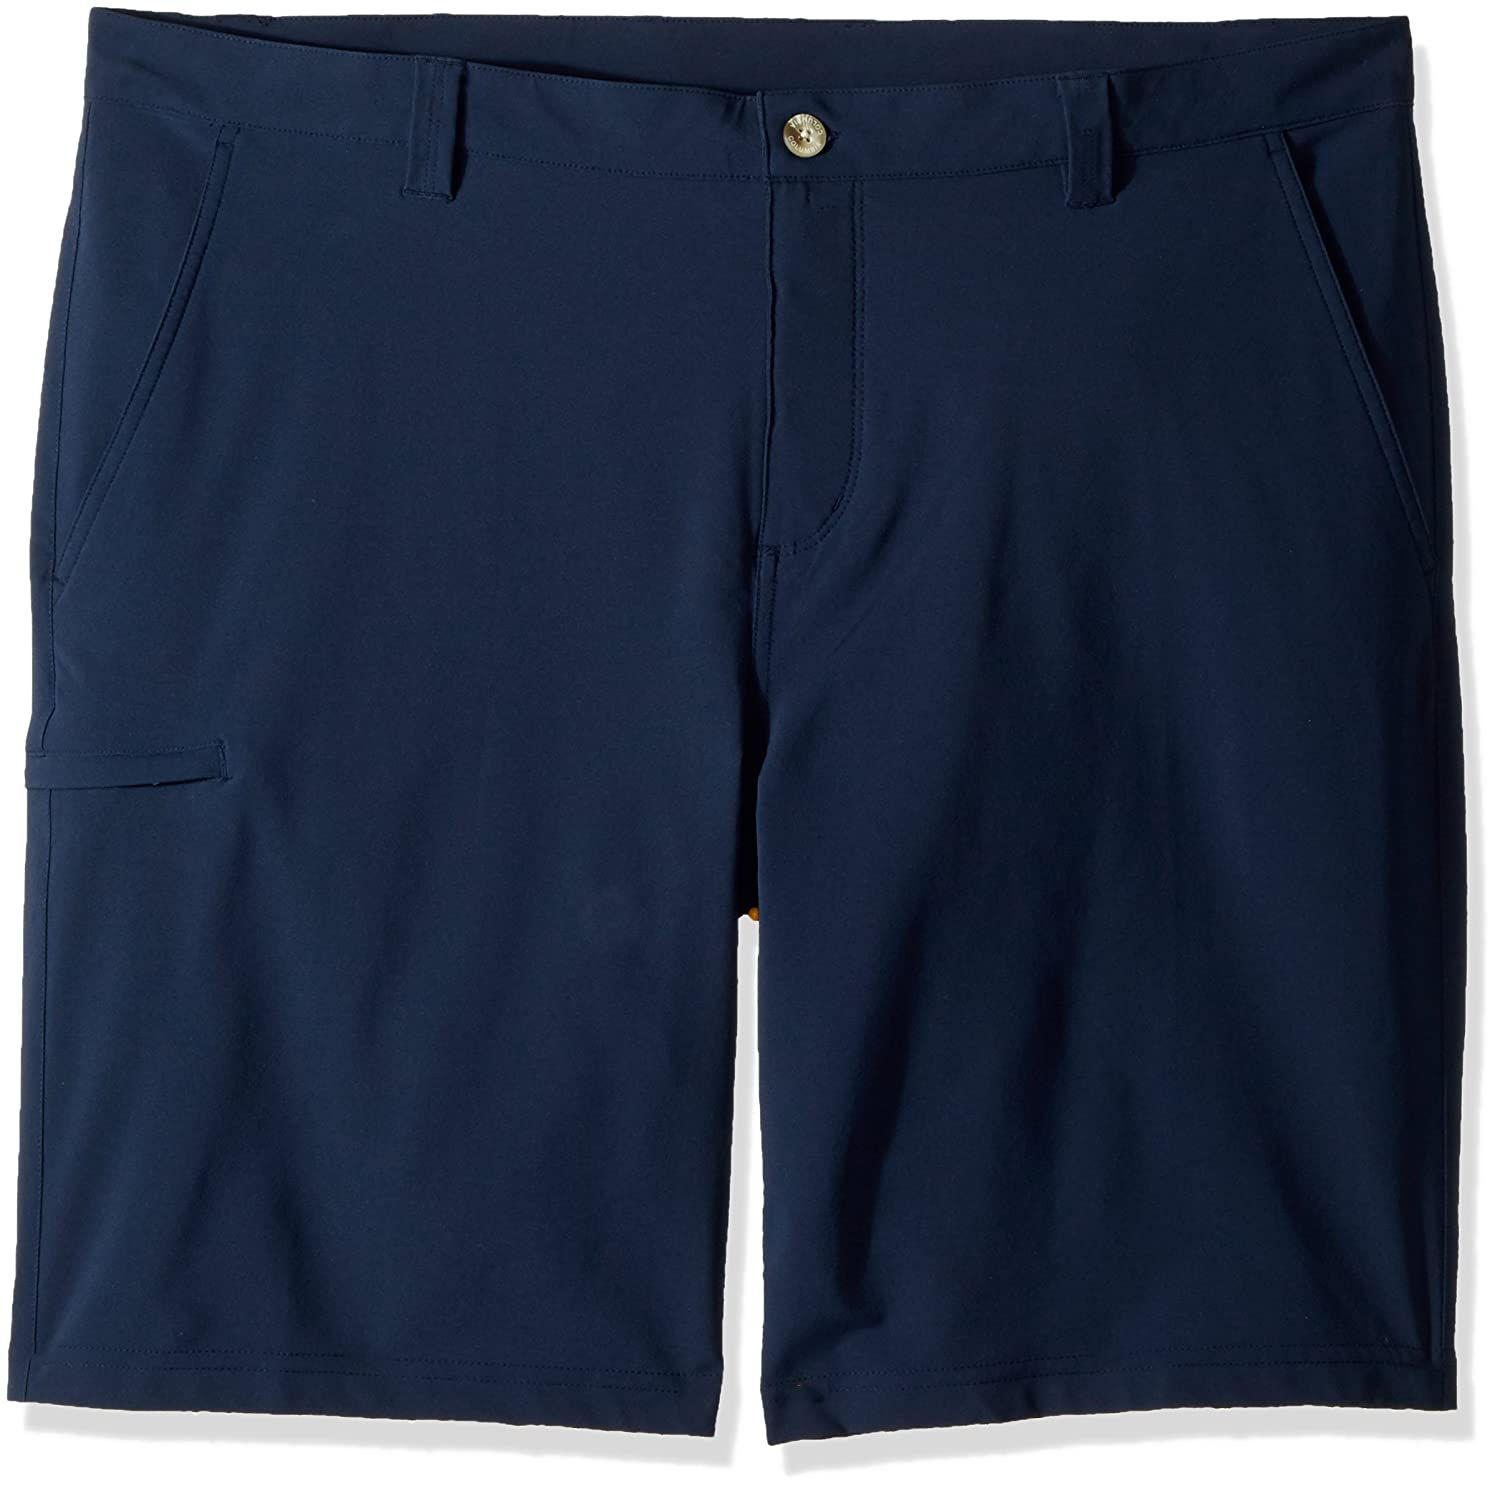 Columbia Men's Grander Marlin II Offshore Big Shorts Columbia (Sporting Goods)